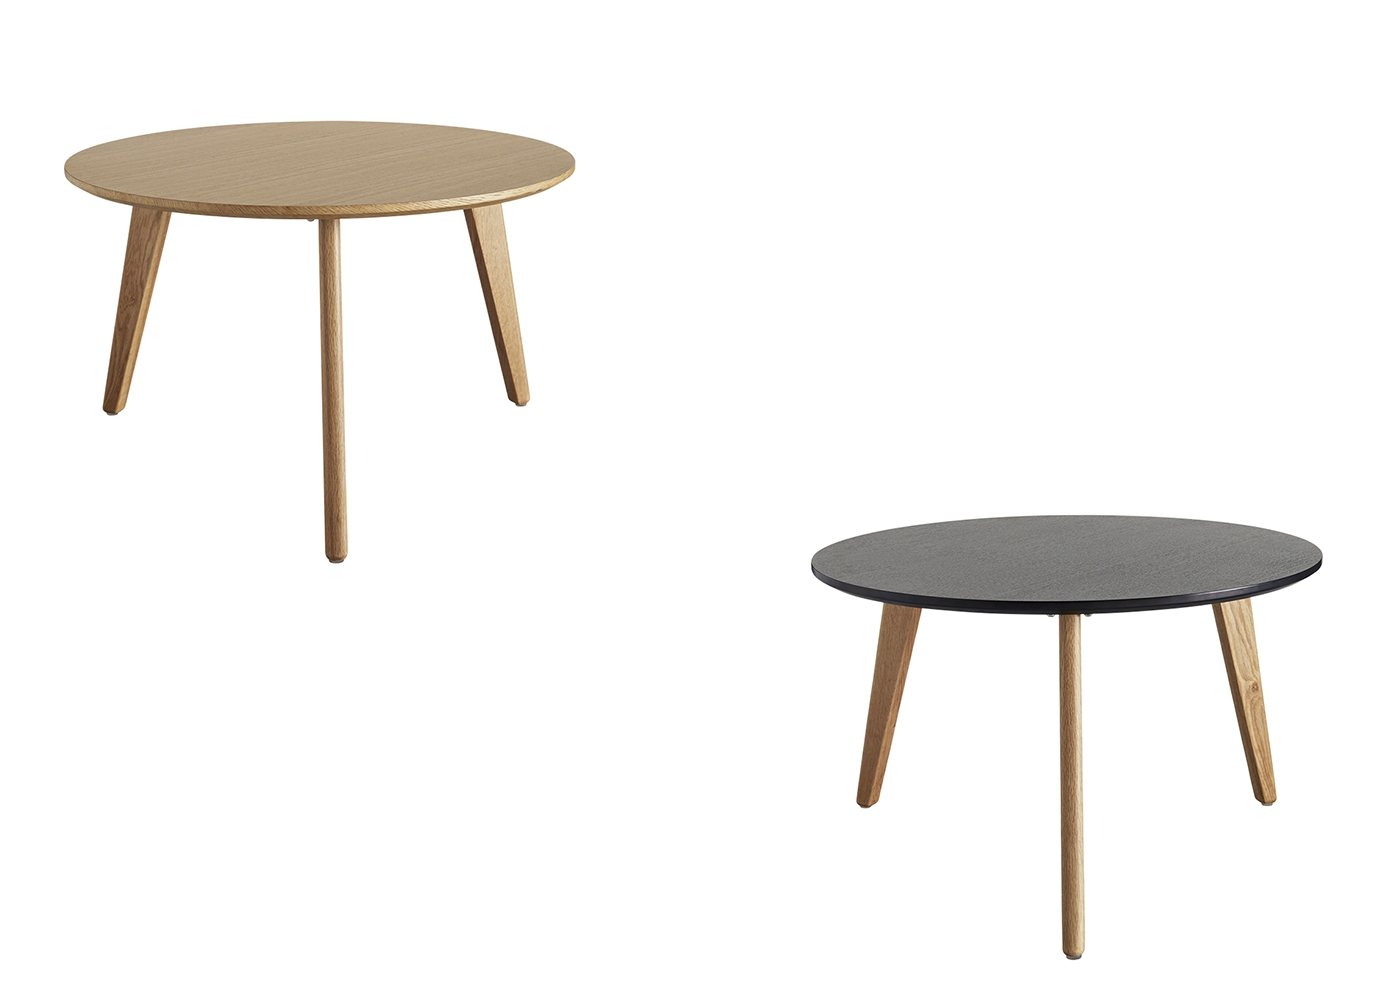 Table gigogne design scandi en ch ne chez ksl living for Table basse gigogne style scandinave